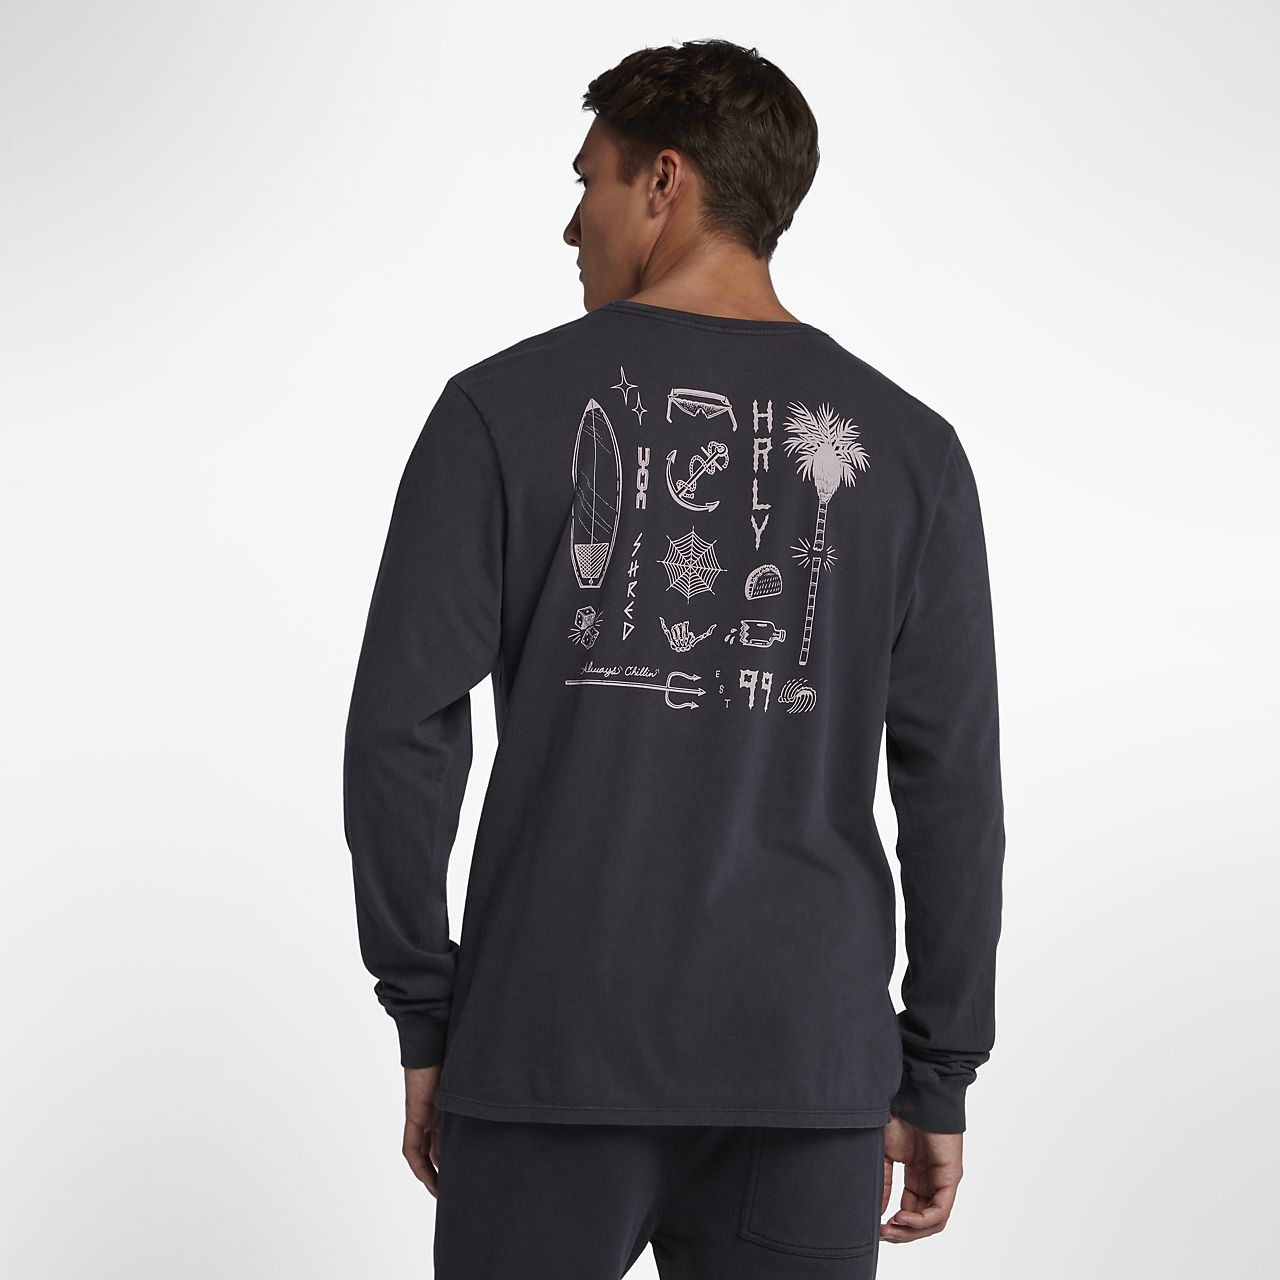 bdeaf1dbcf4 Hurley Shred Men s Long-Sleeve T-Shirt. Nike.com